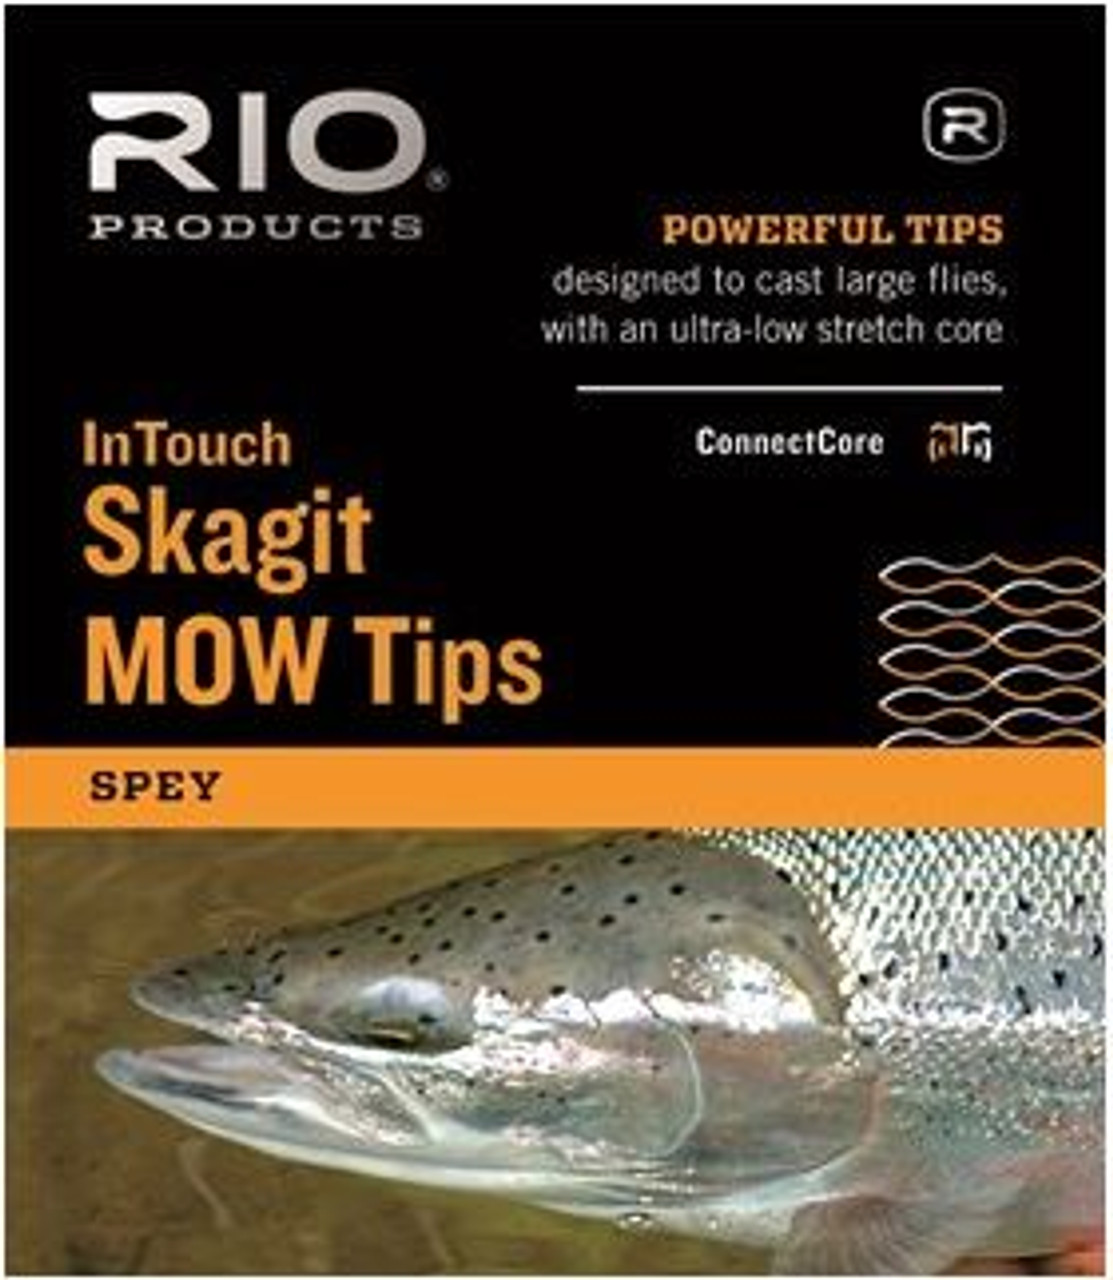 INTOUCH SKAGIT EXTRA HEAVY MOW TIP